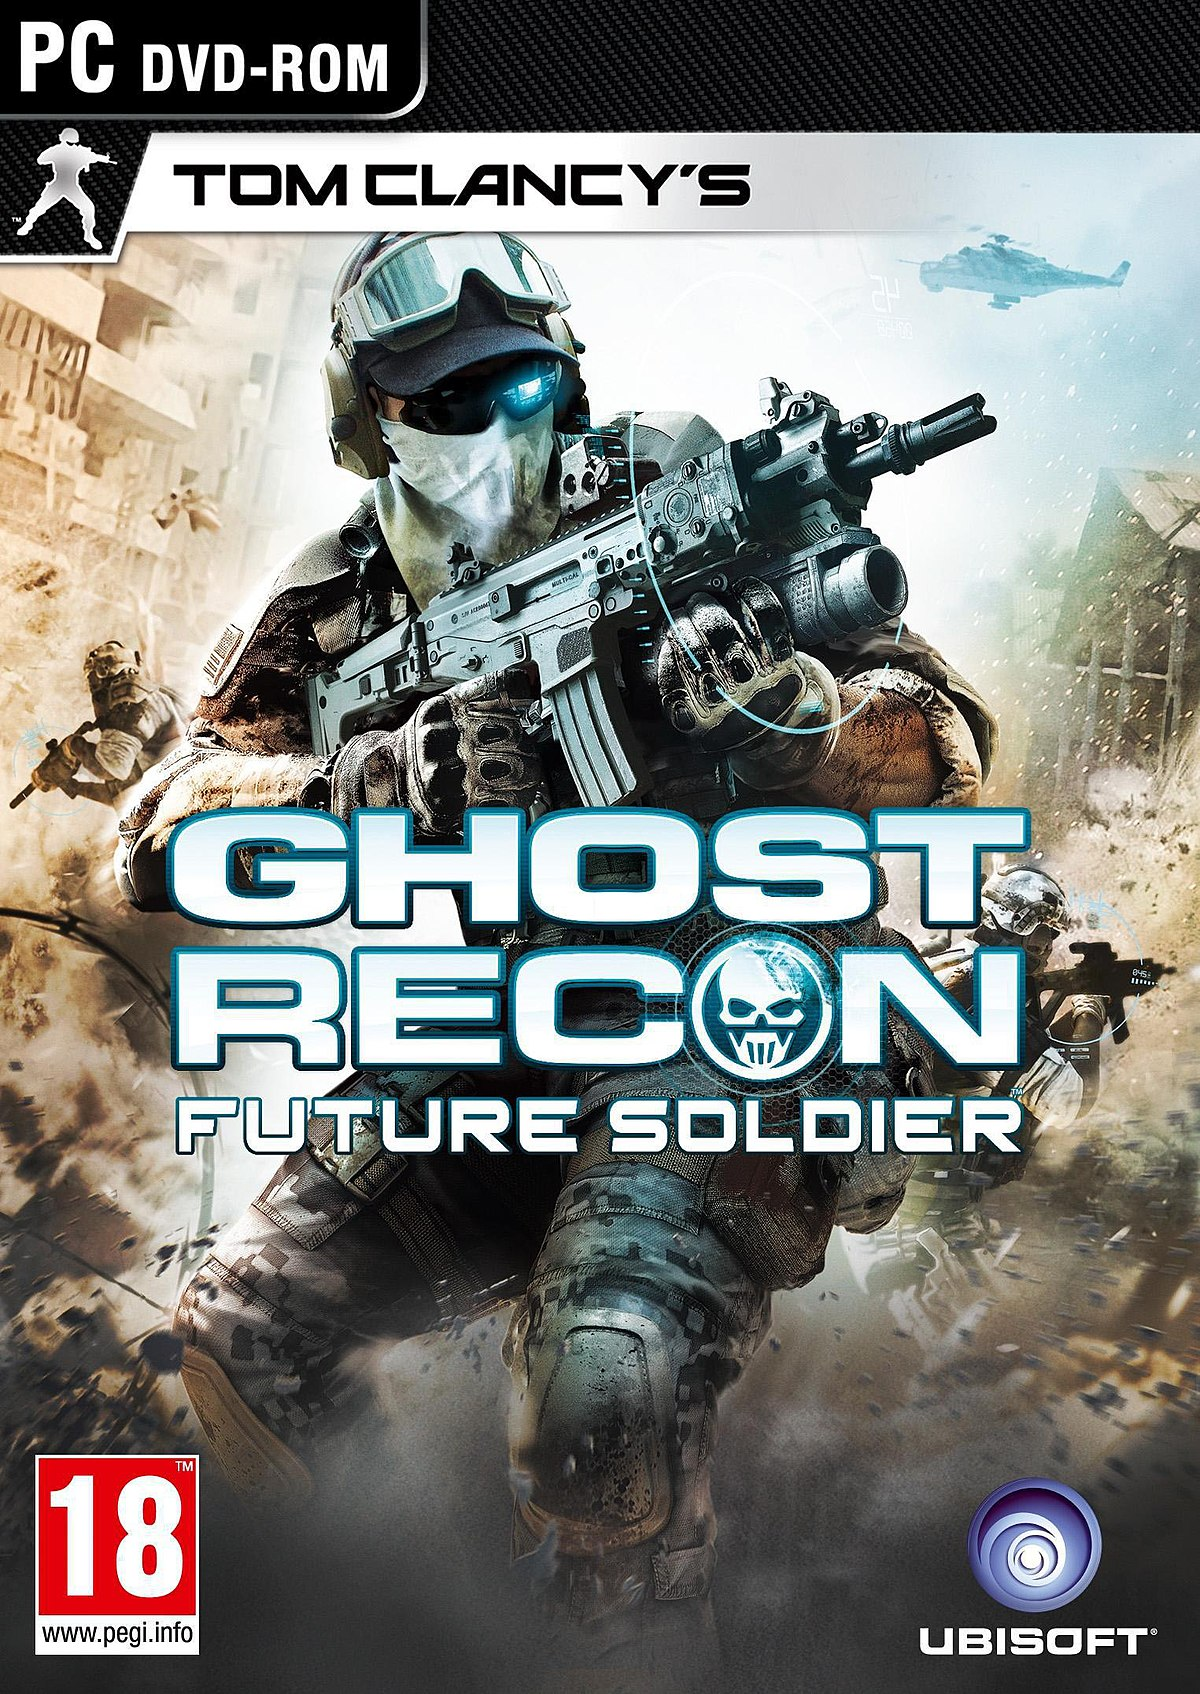 Tom Clancy's Ghost Recon Future Soldier+Гарантия